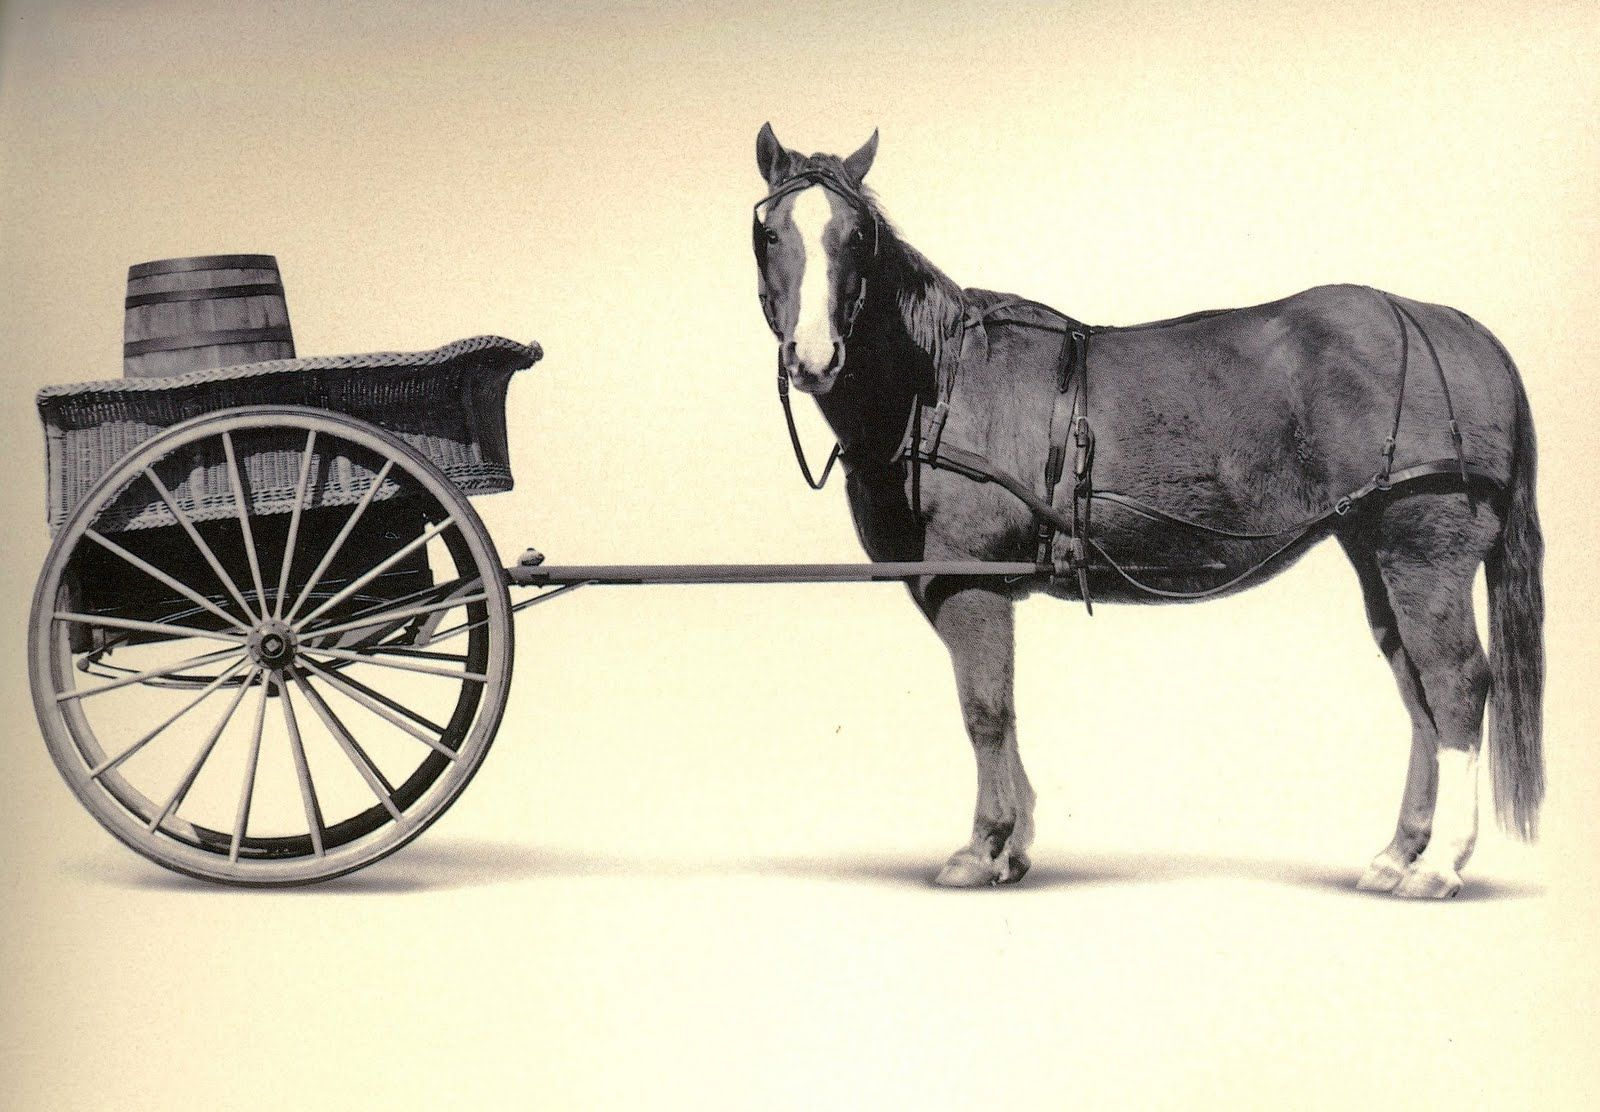 The Horse and the Cart